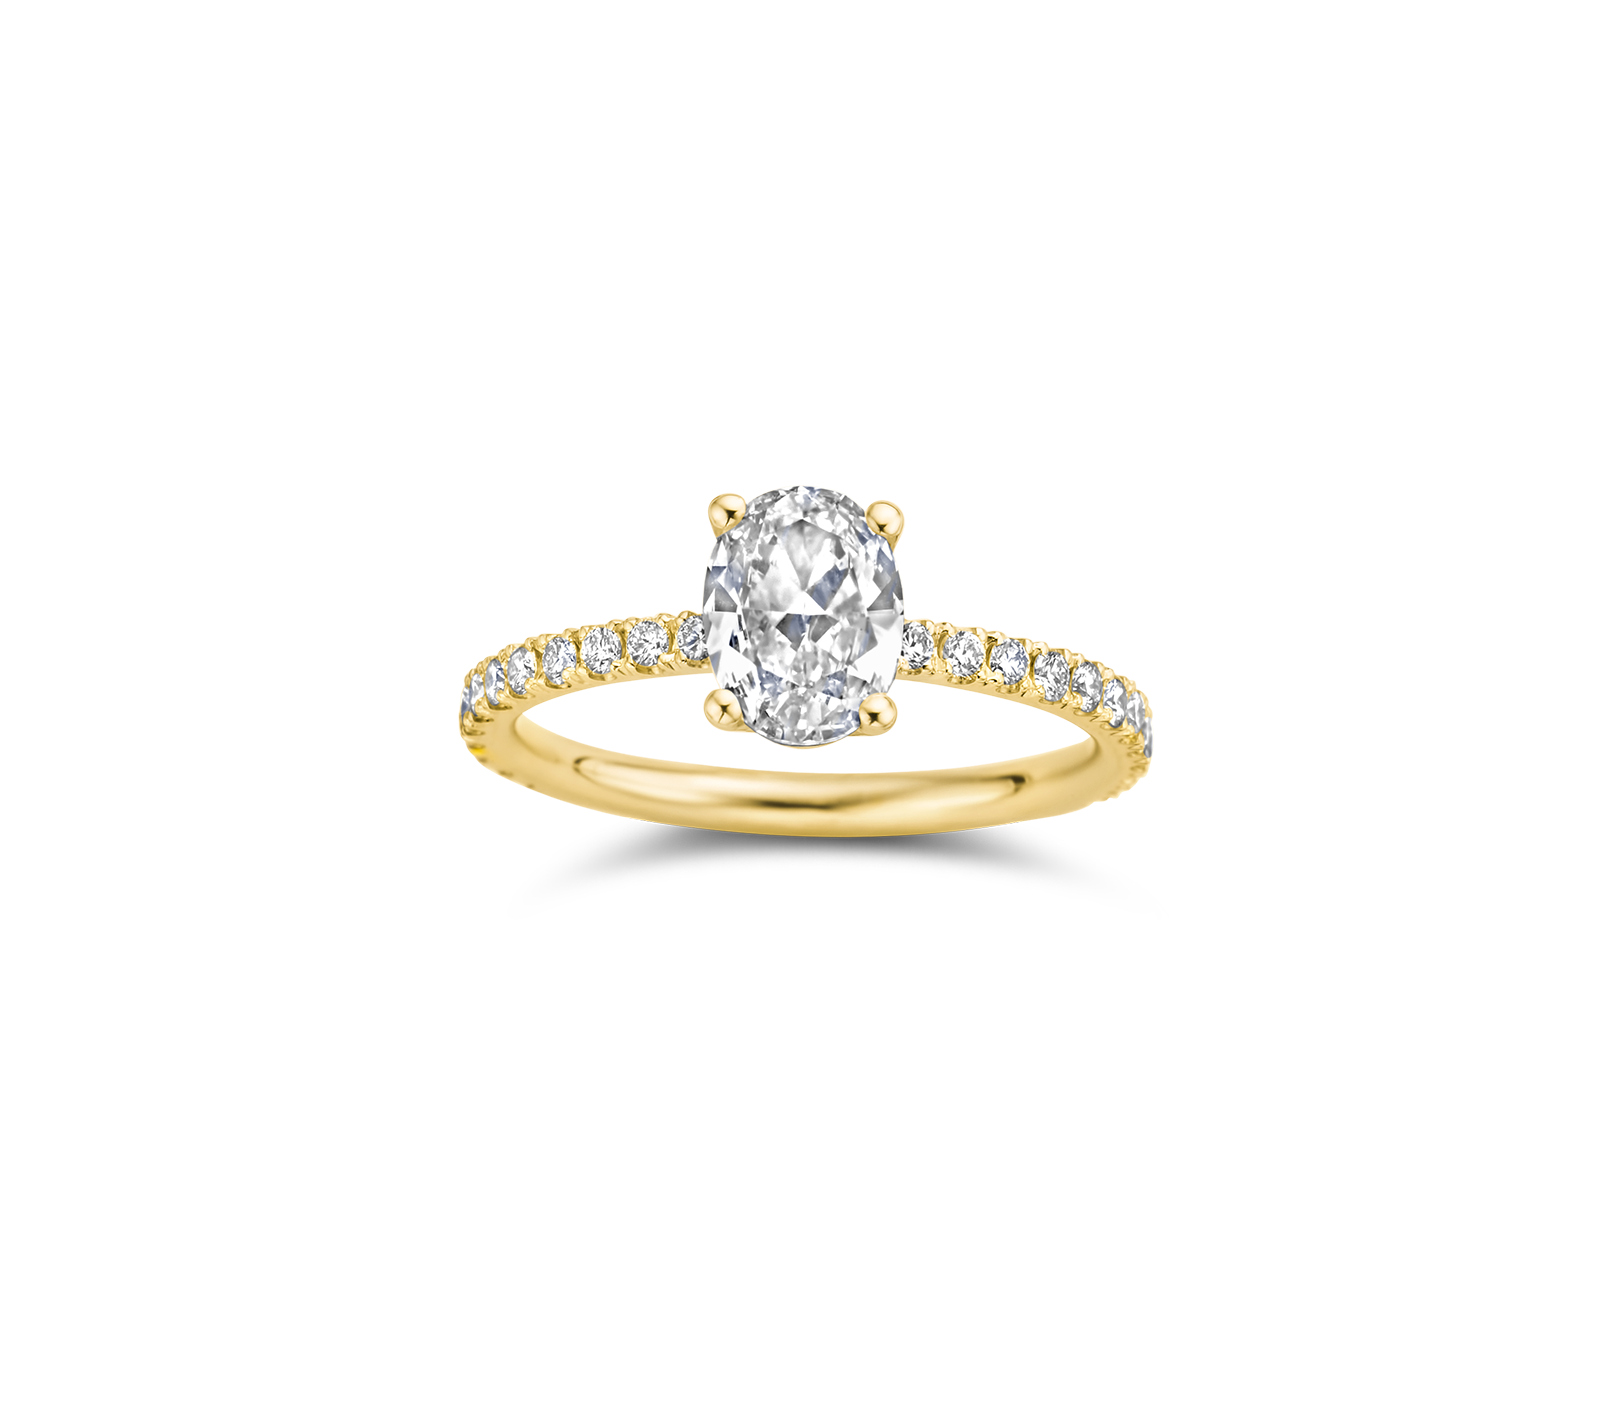 Maya engagement ring packshot - yellow gold